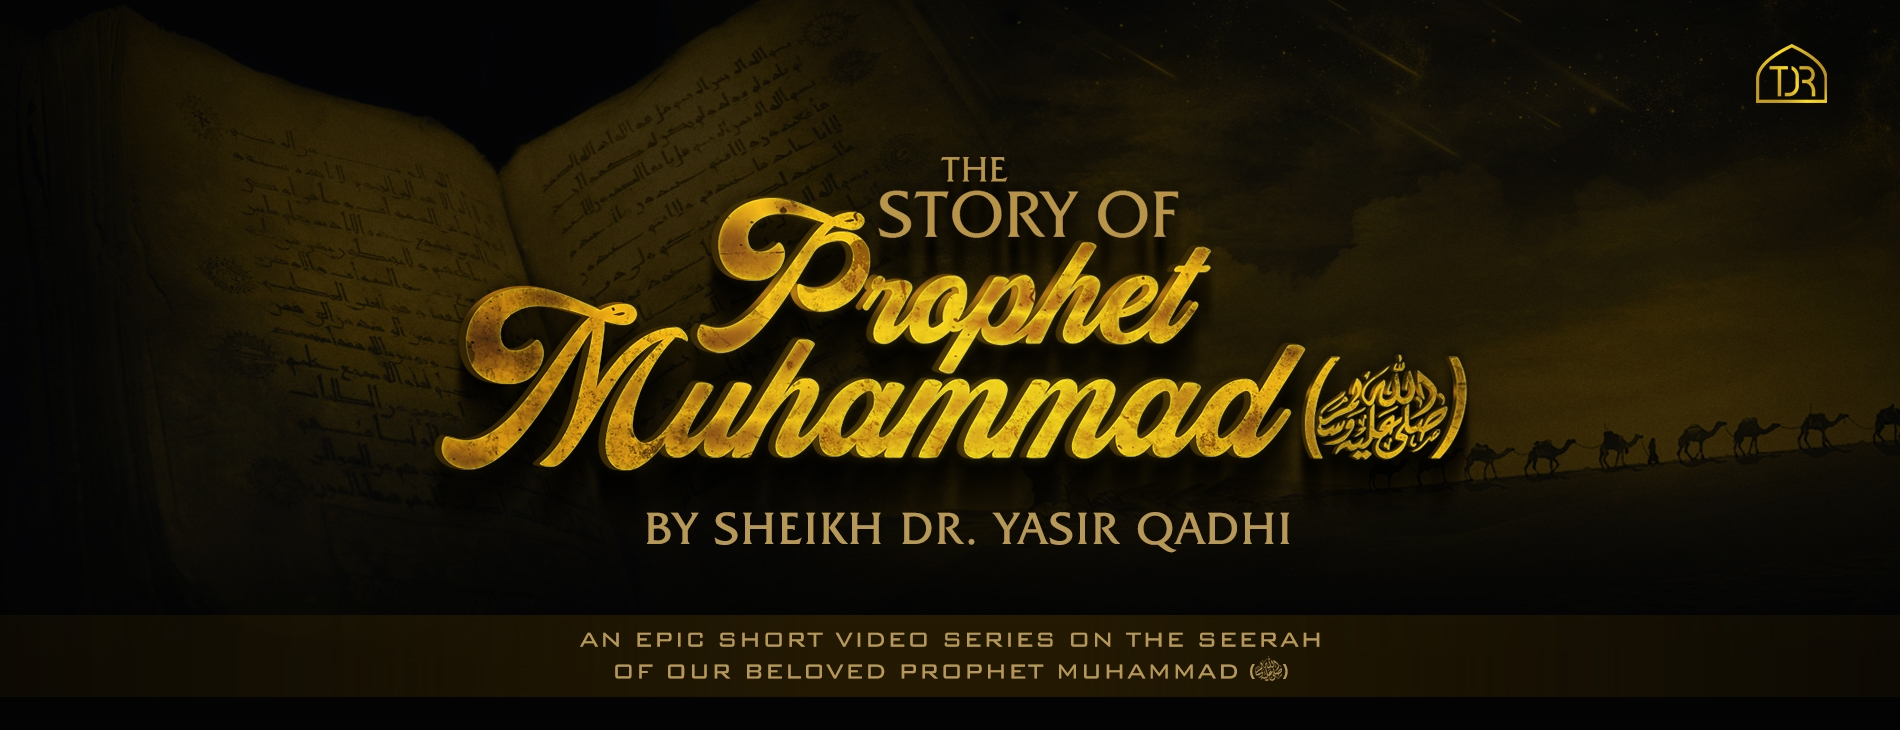 The Story Of Prophet Muhammad (ﷺ)